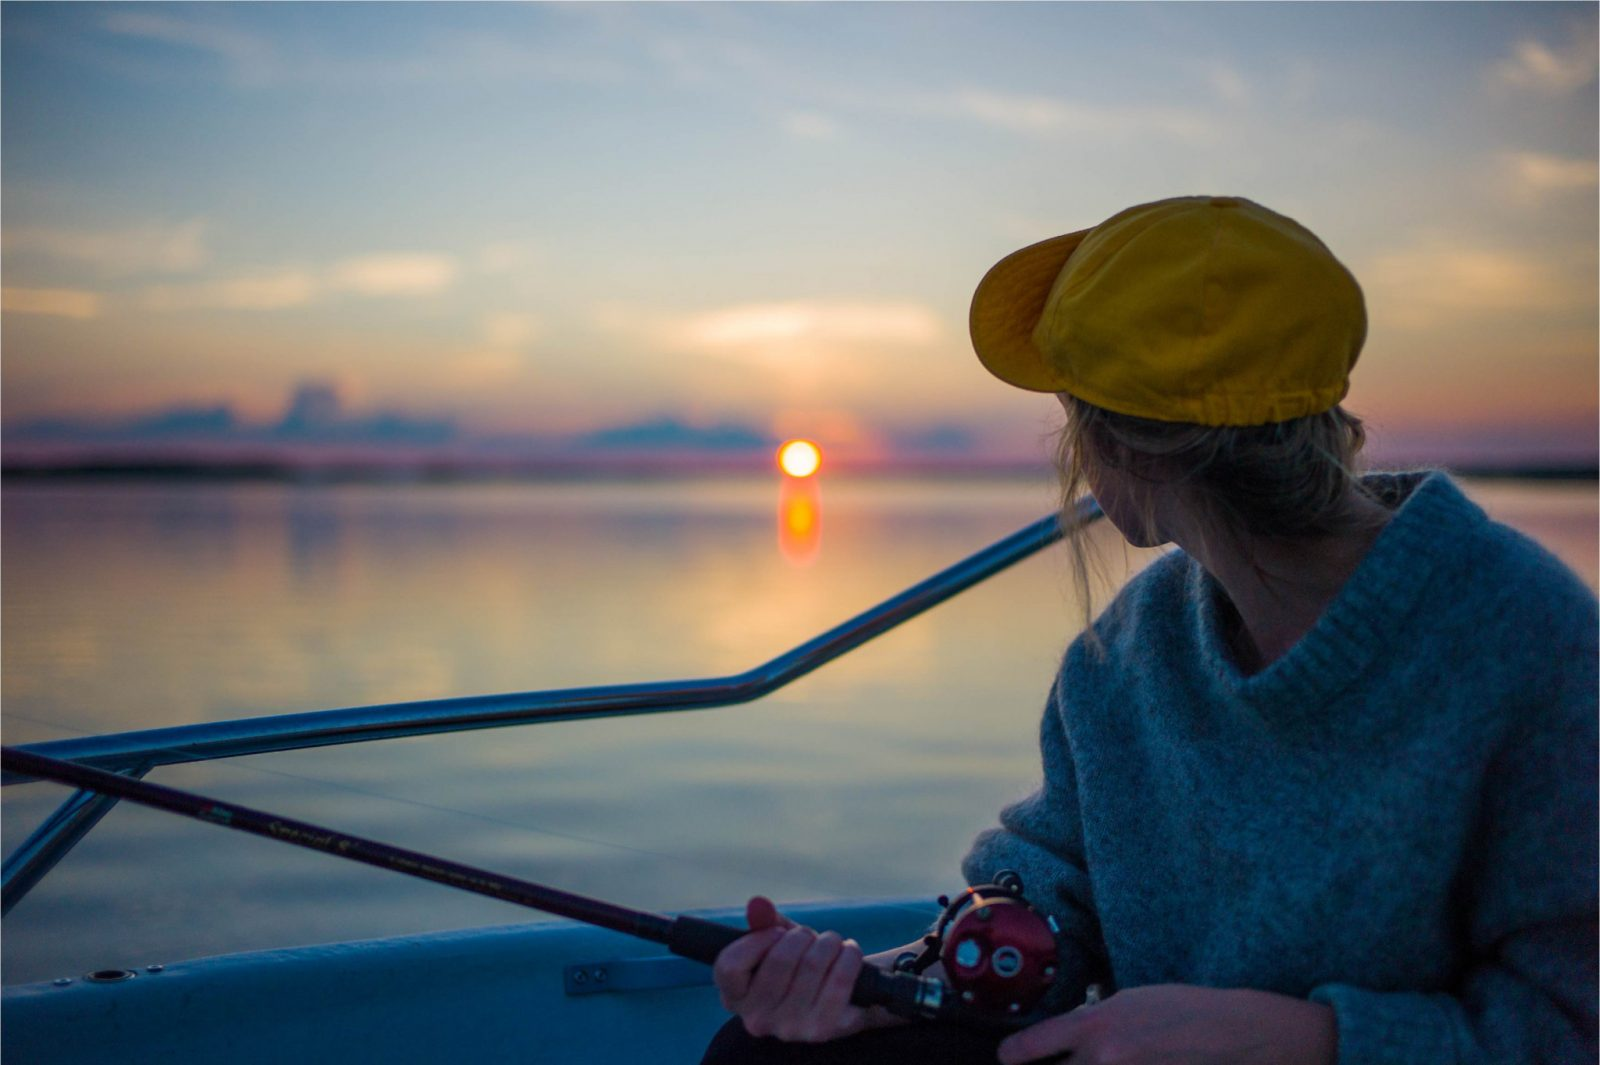 Girl fishing on a boat in the sun rise